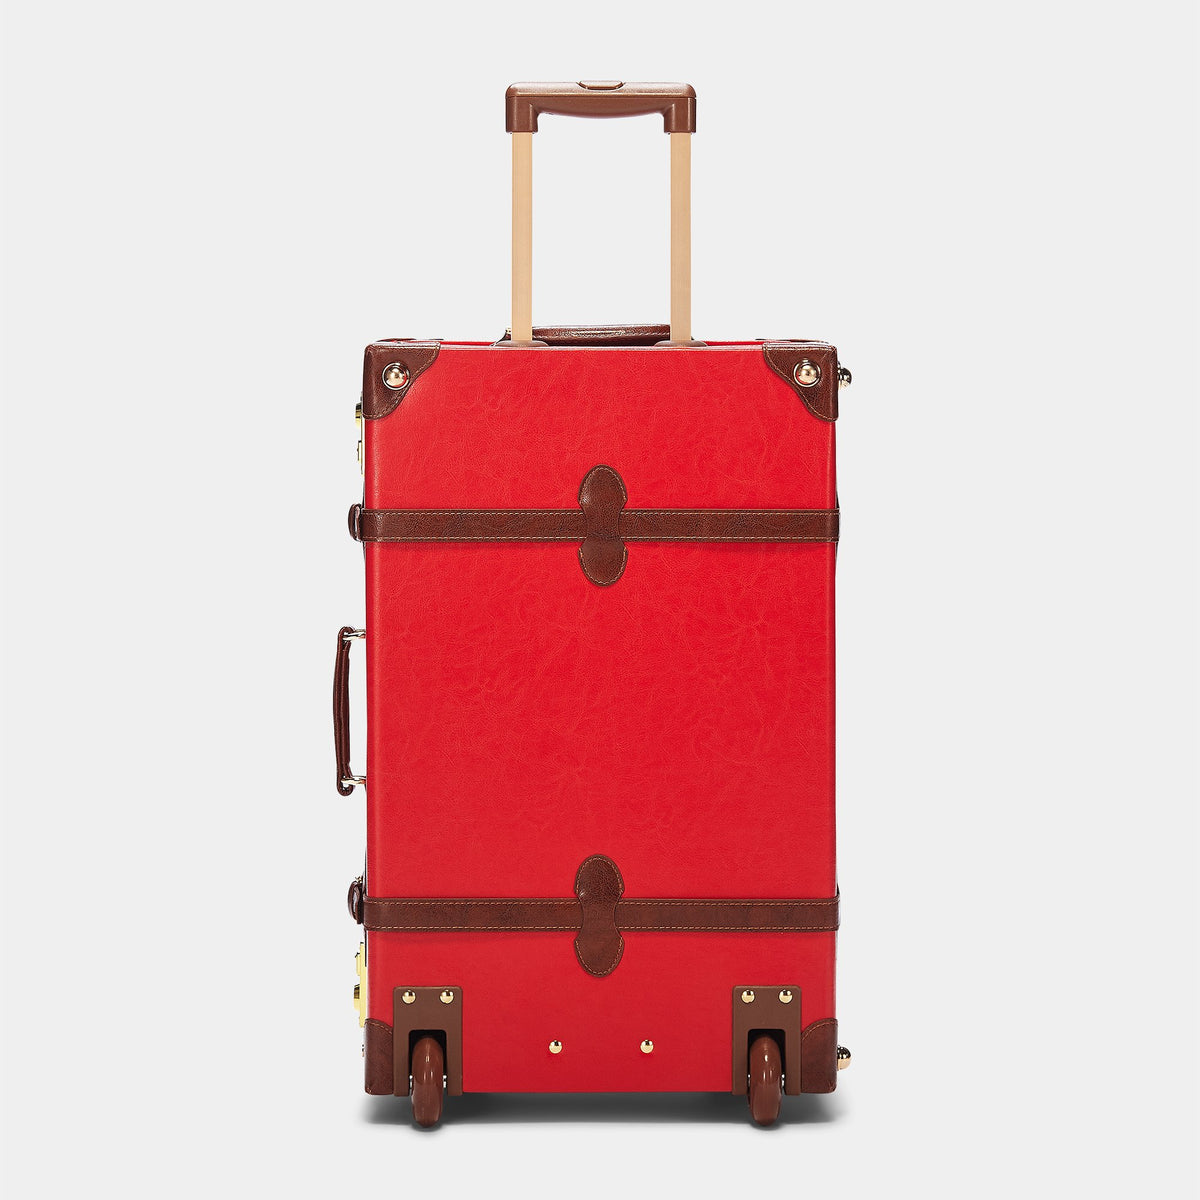 The Entrepreneur Stowaway in Red - Vintage-Inspired Vegan Luggage - Exterior Back with Extendable Handle